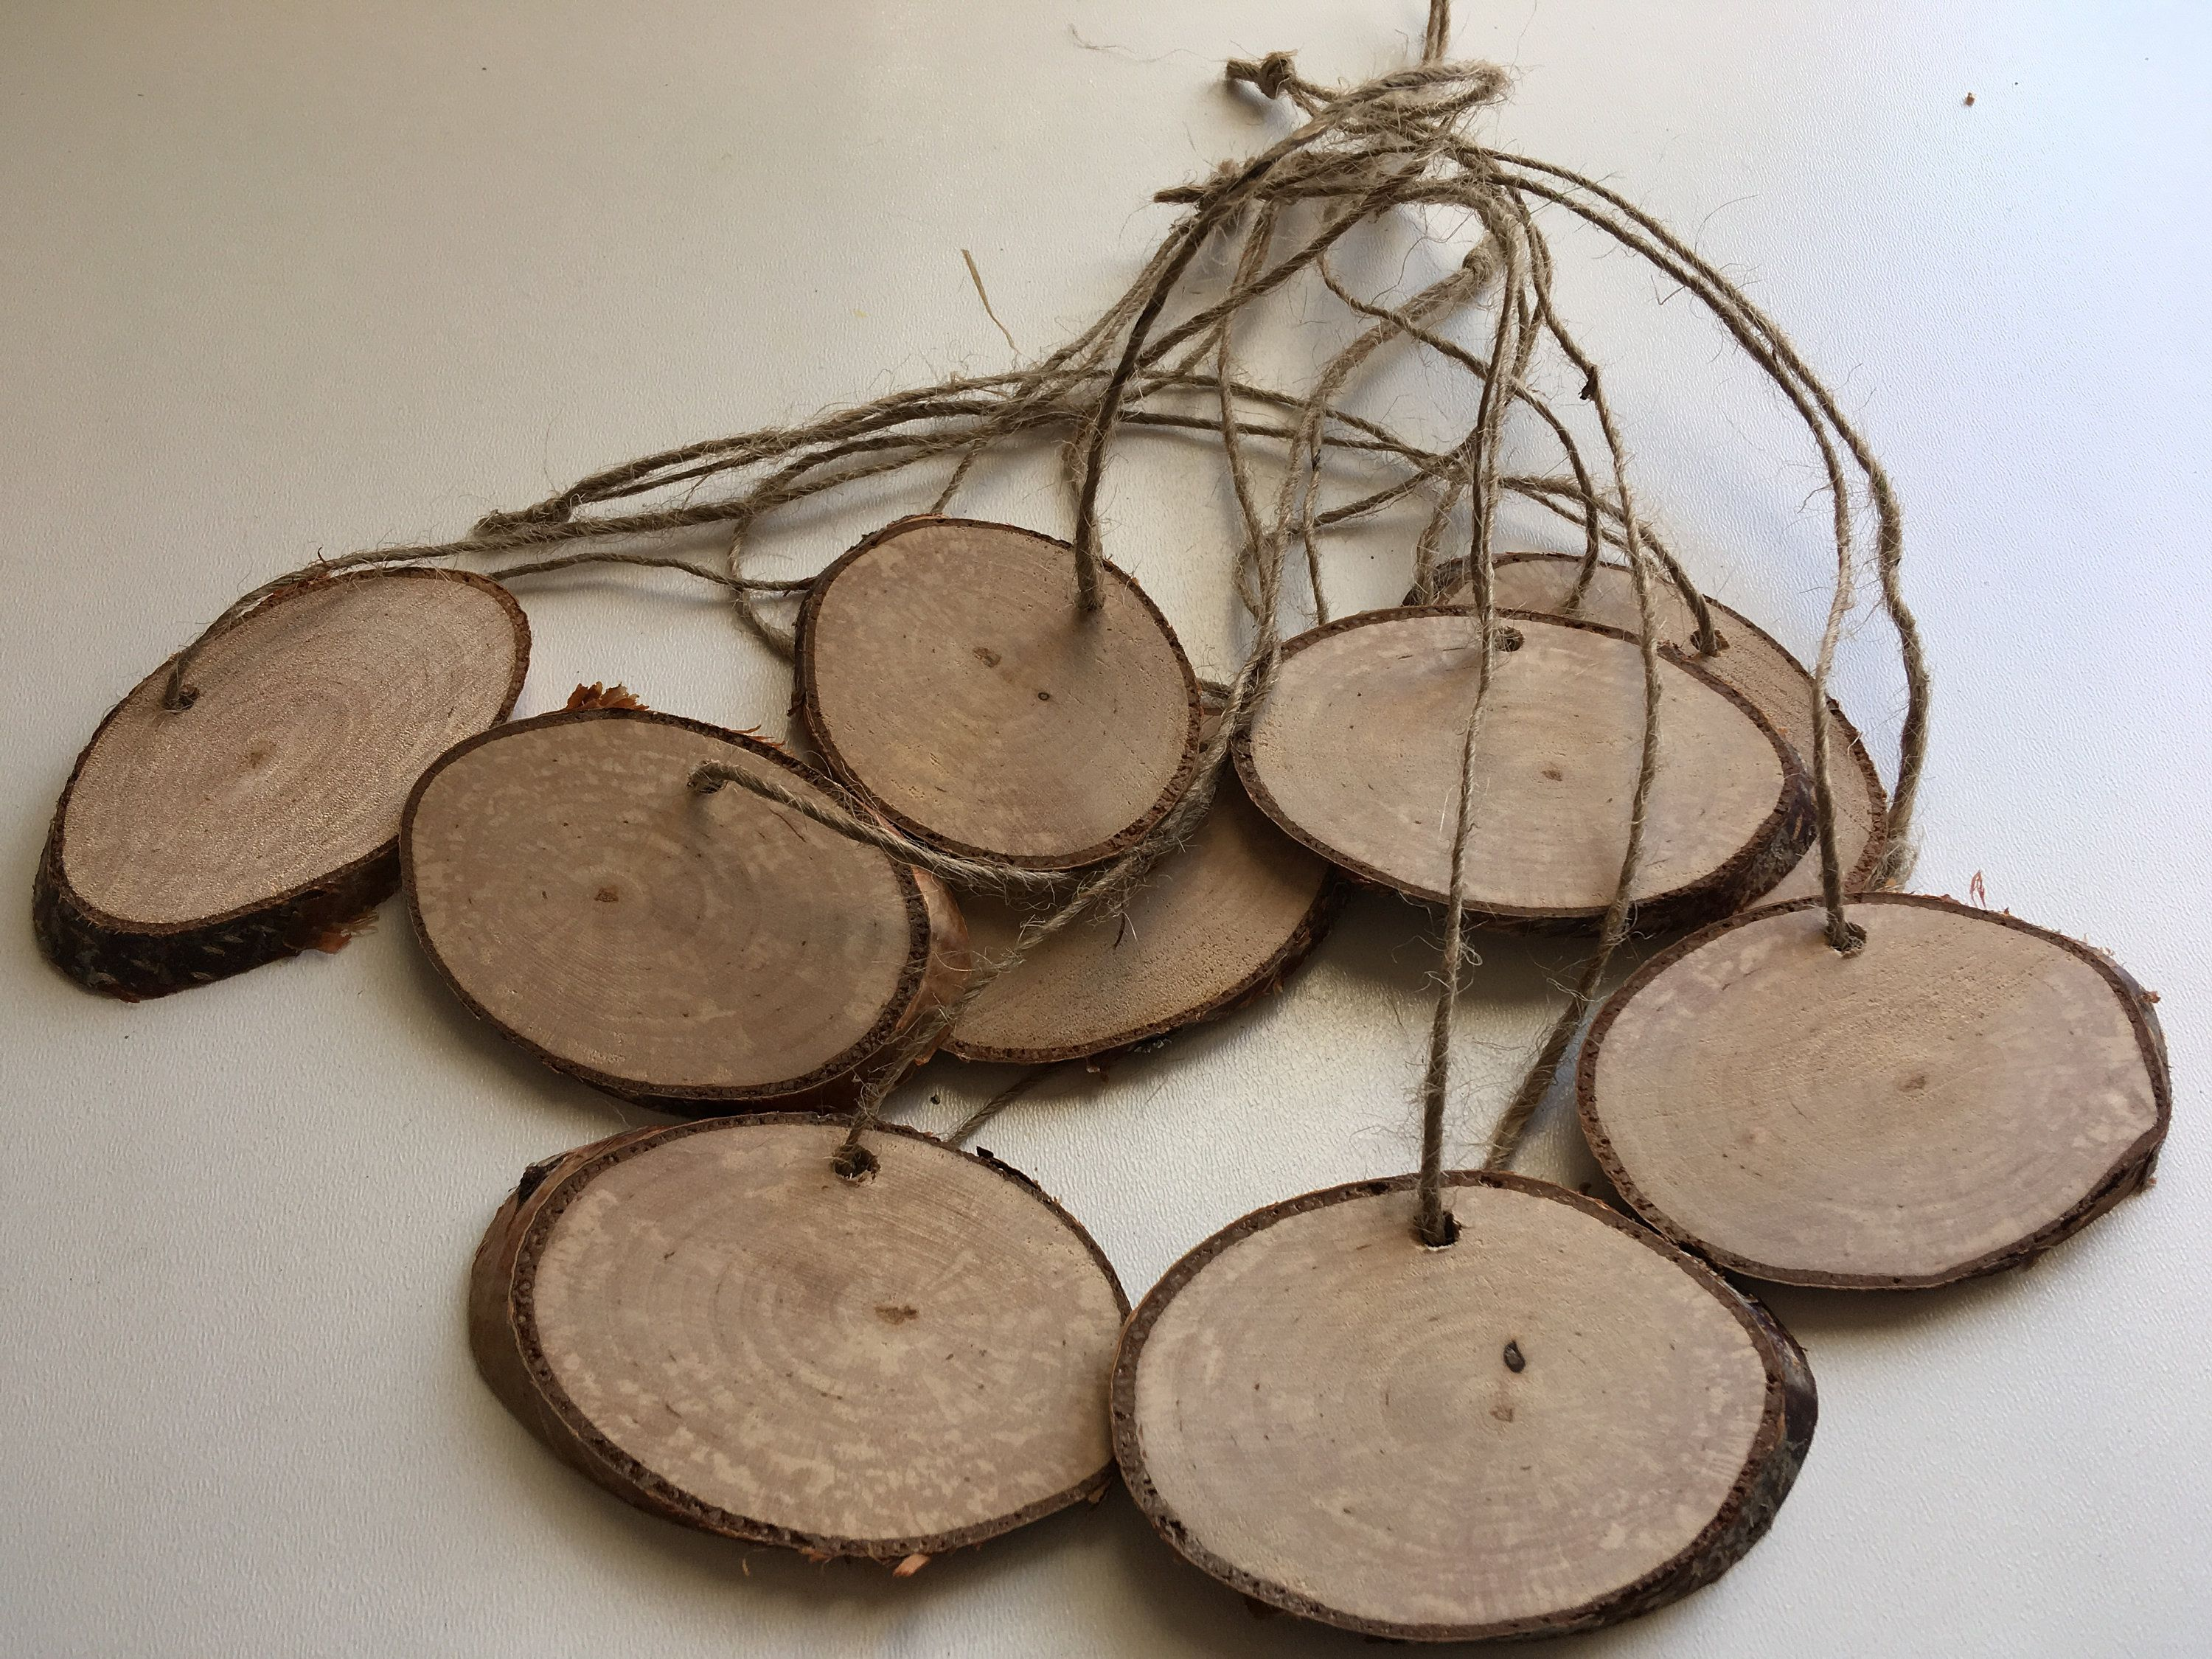 50 Oval Birch Wood Slices Oval Natural Birch Wood Slices 8 13 Cm Or 3 5 Inch Long Oval Birch Wood Wood Tags Unique Items Products Forest Wedding Decorations